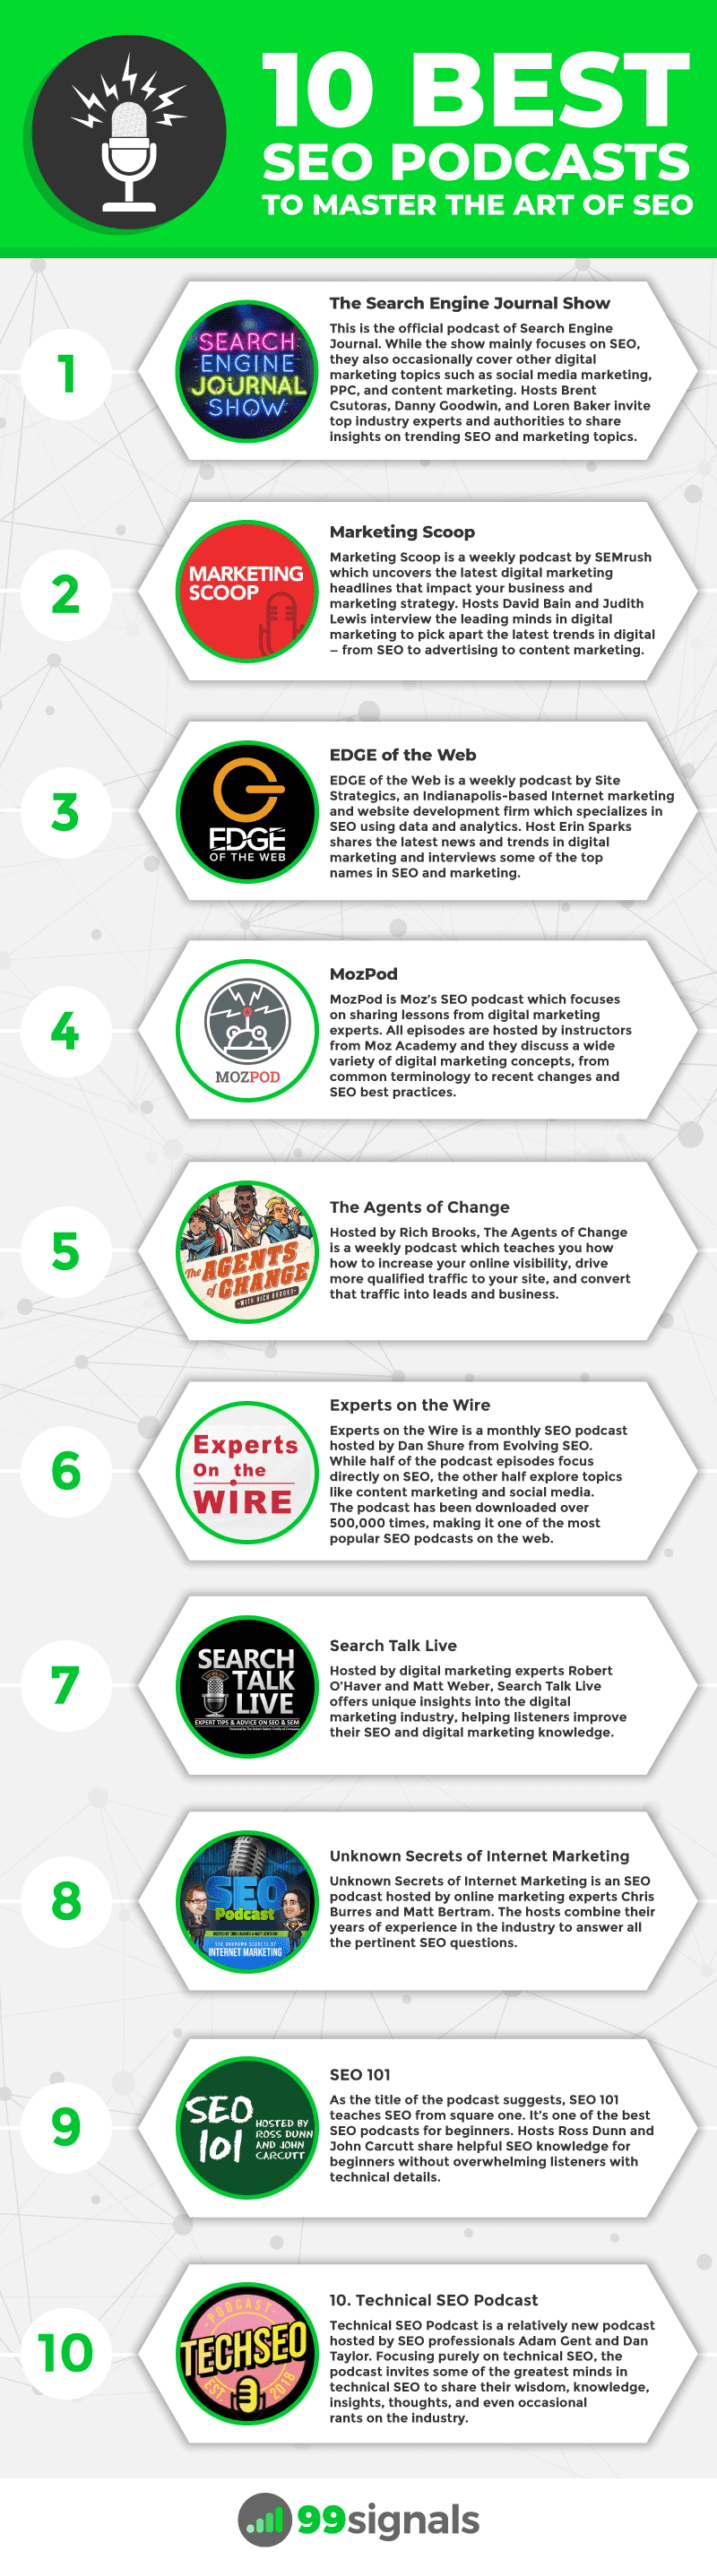 10 Best SEO Podcasts to Master the Art of SEO [Infographic]